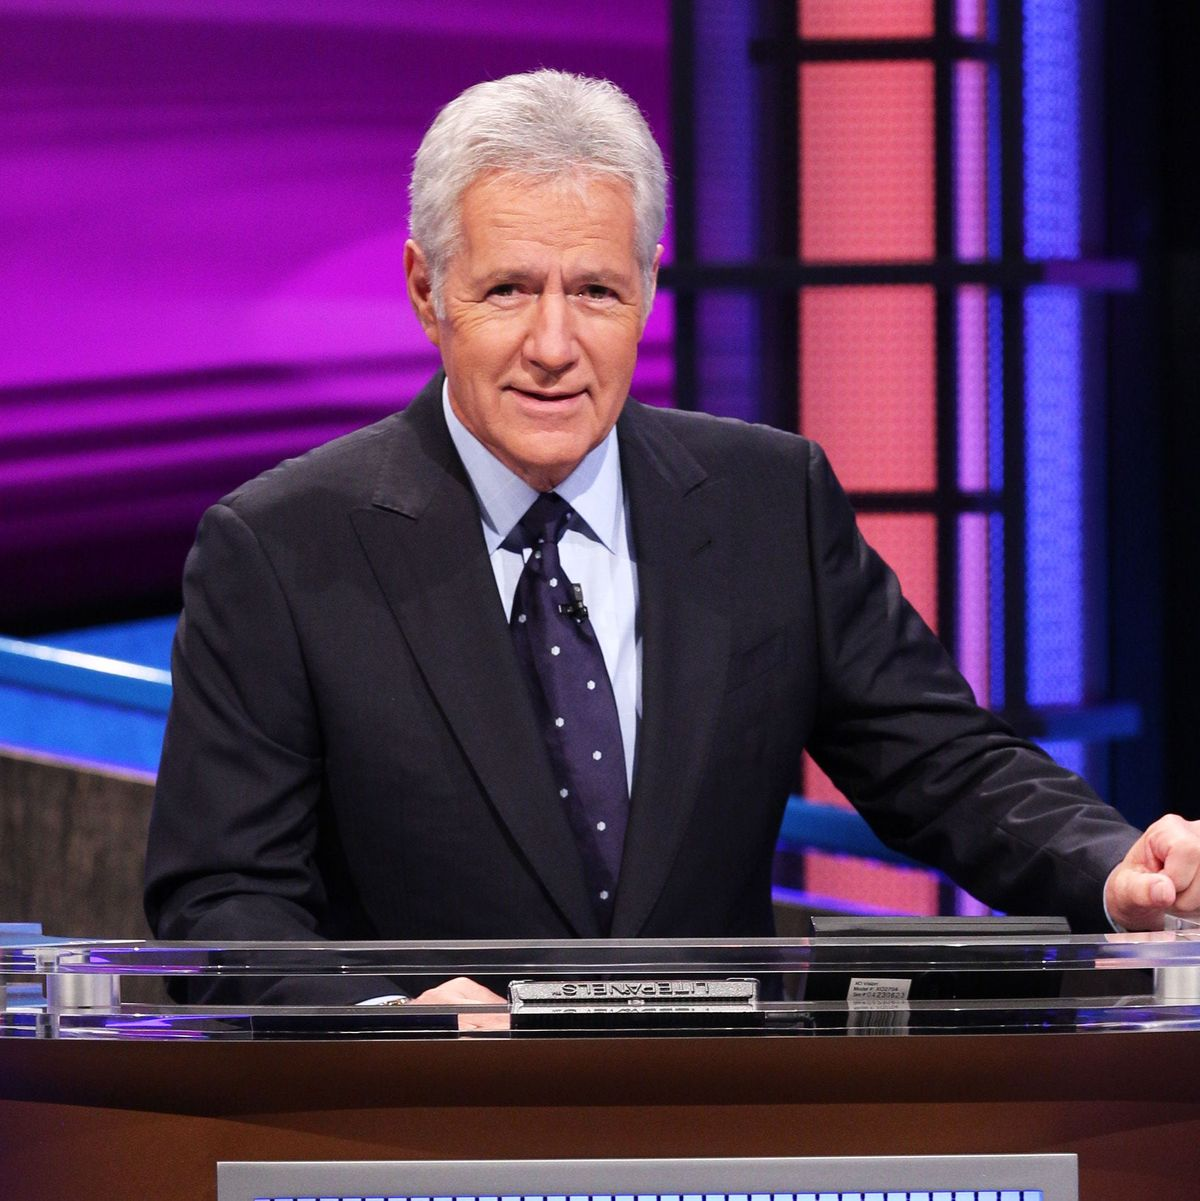 Jeopardy! Announces New Episodes With Ken Jennings Date